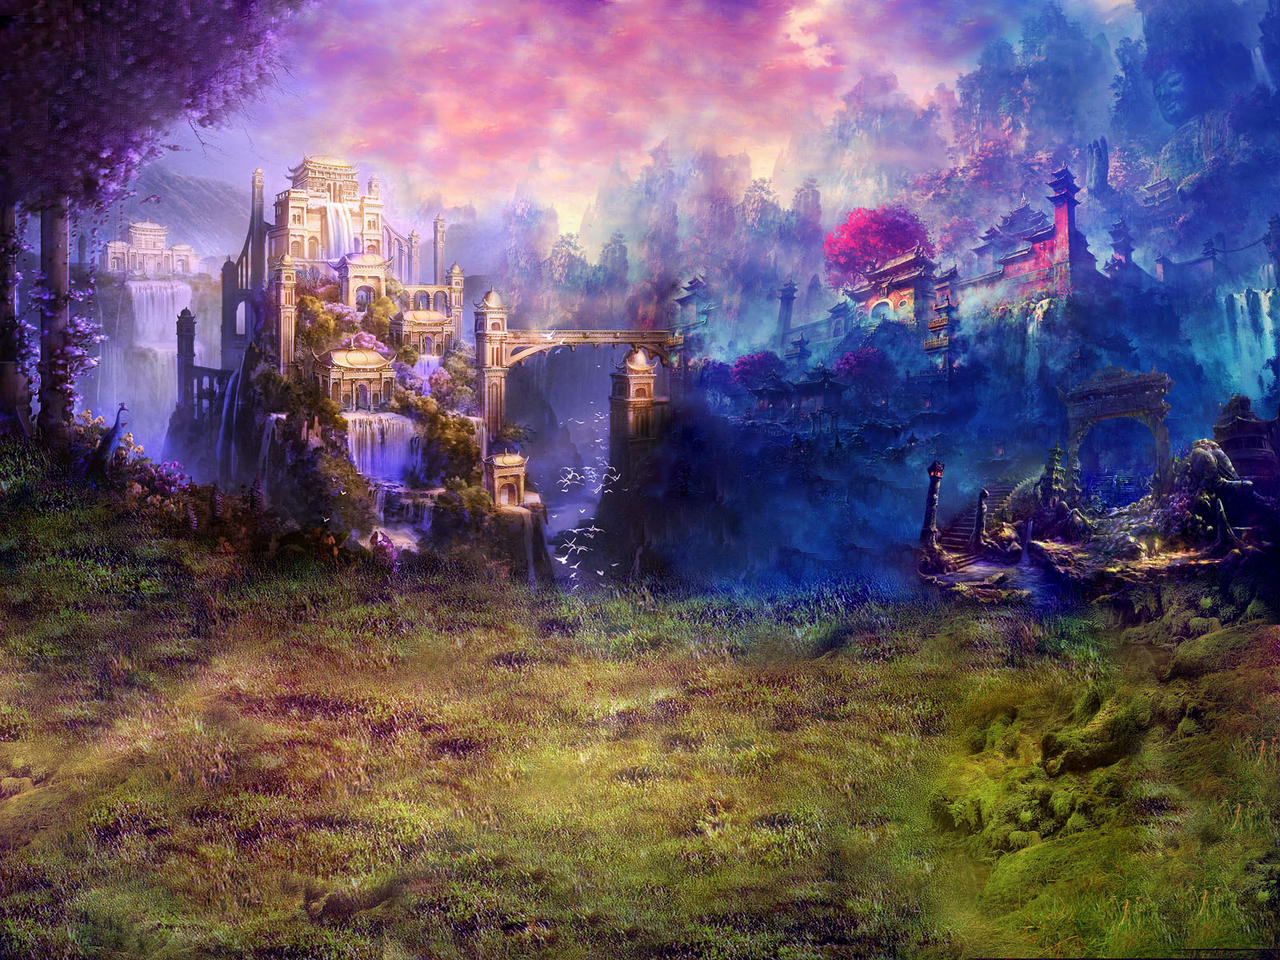 fantasy places wallpapers hd by 100csilla on deviantart